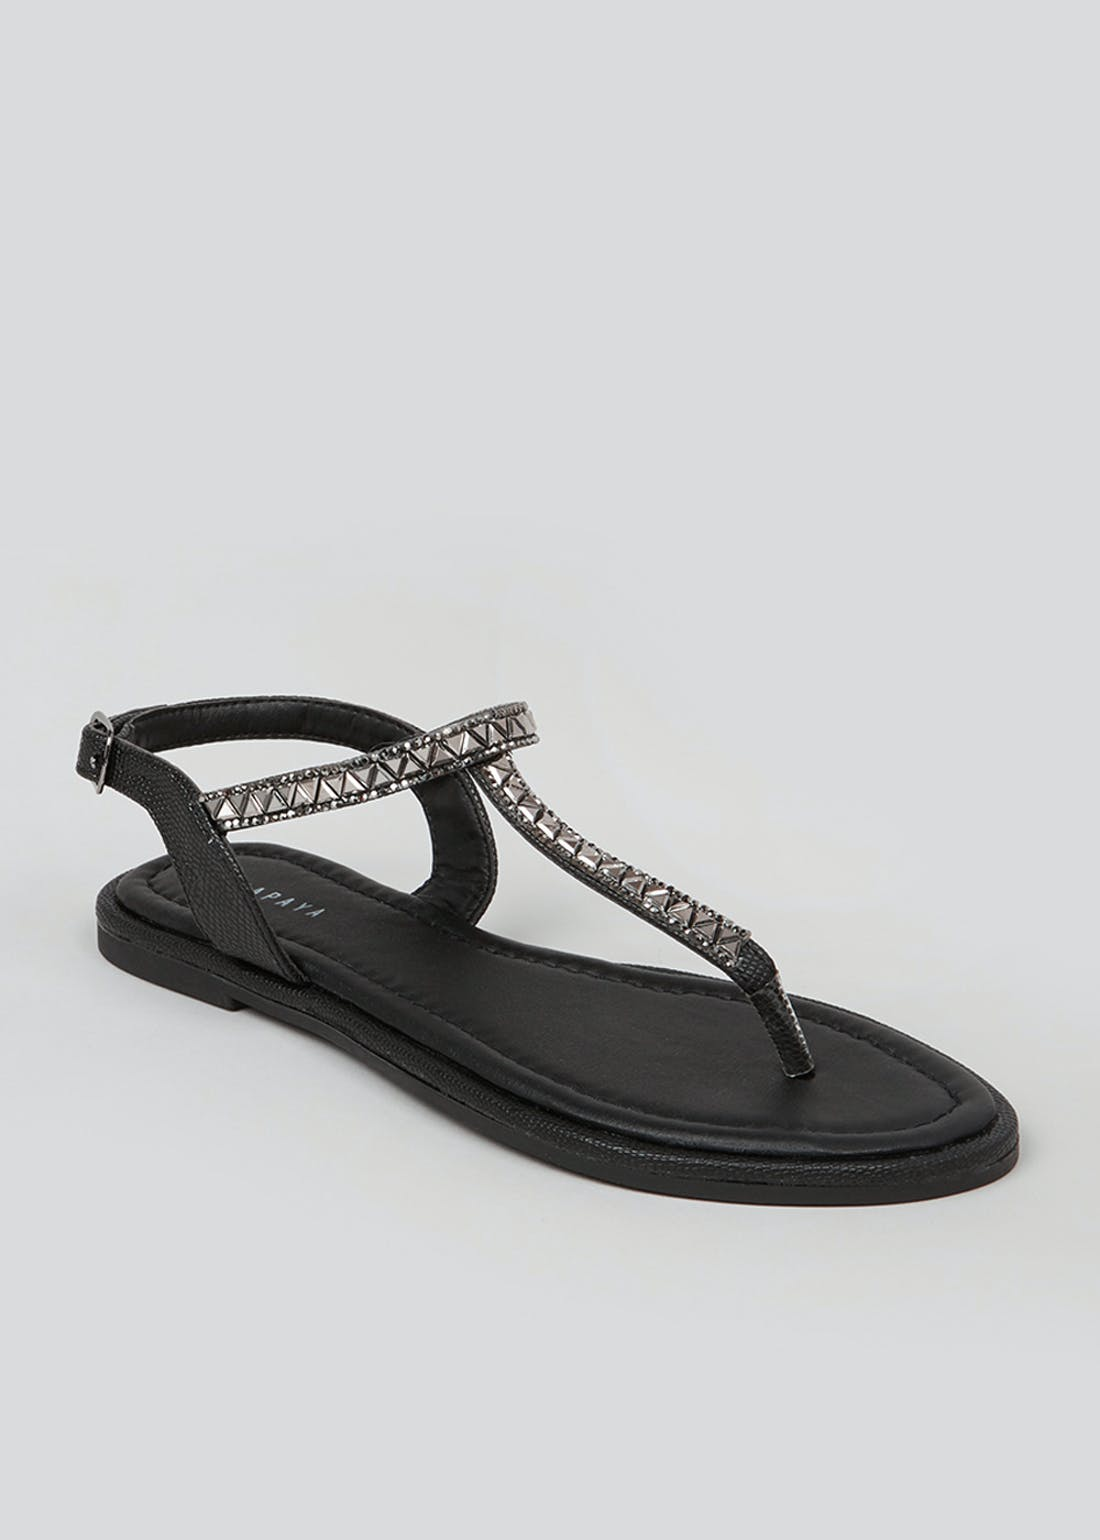 Black Diamante Strappy Sandals